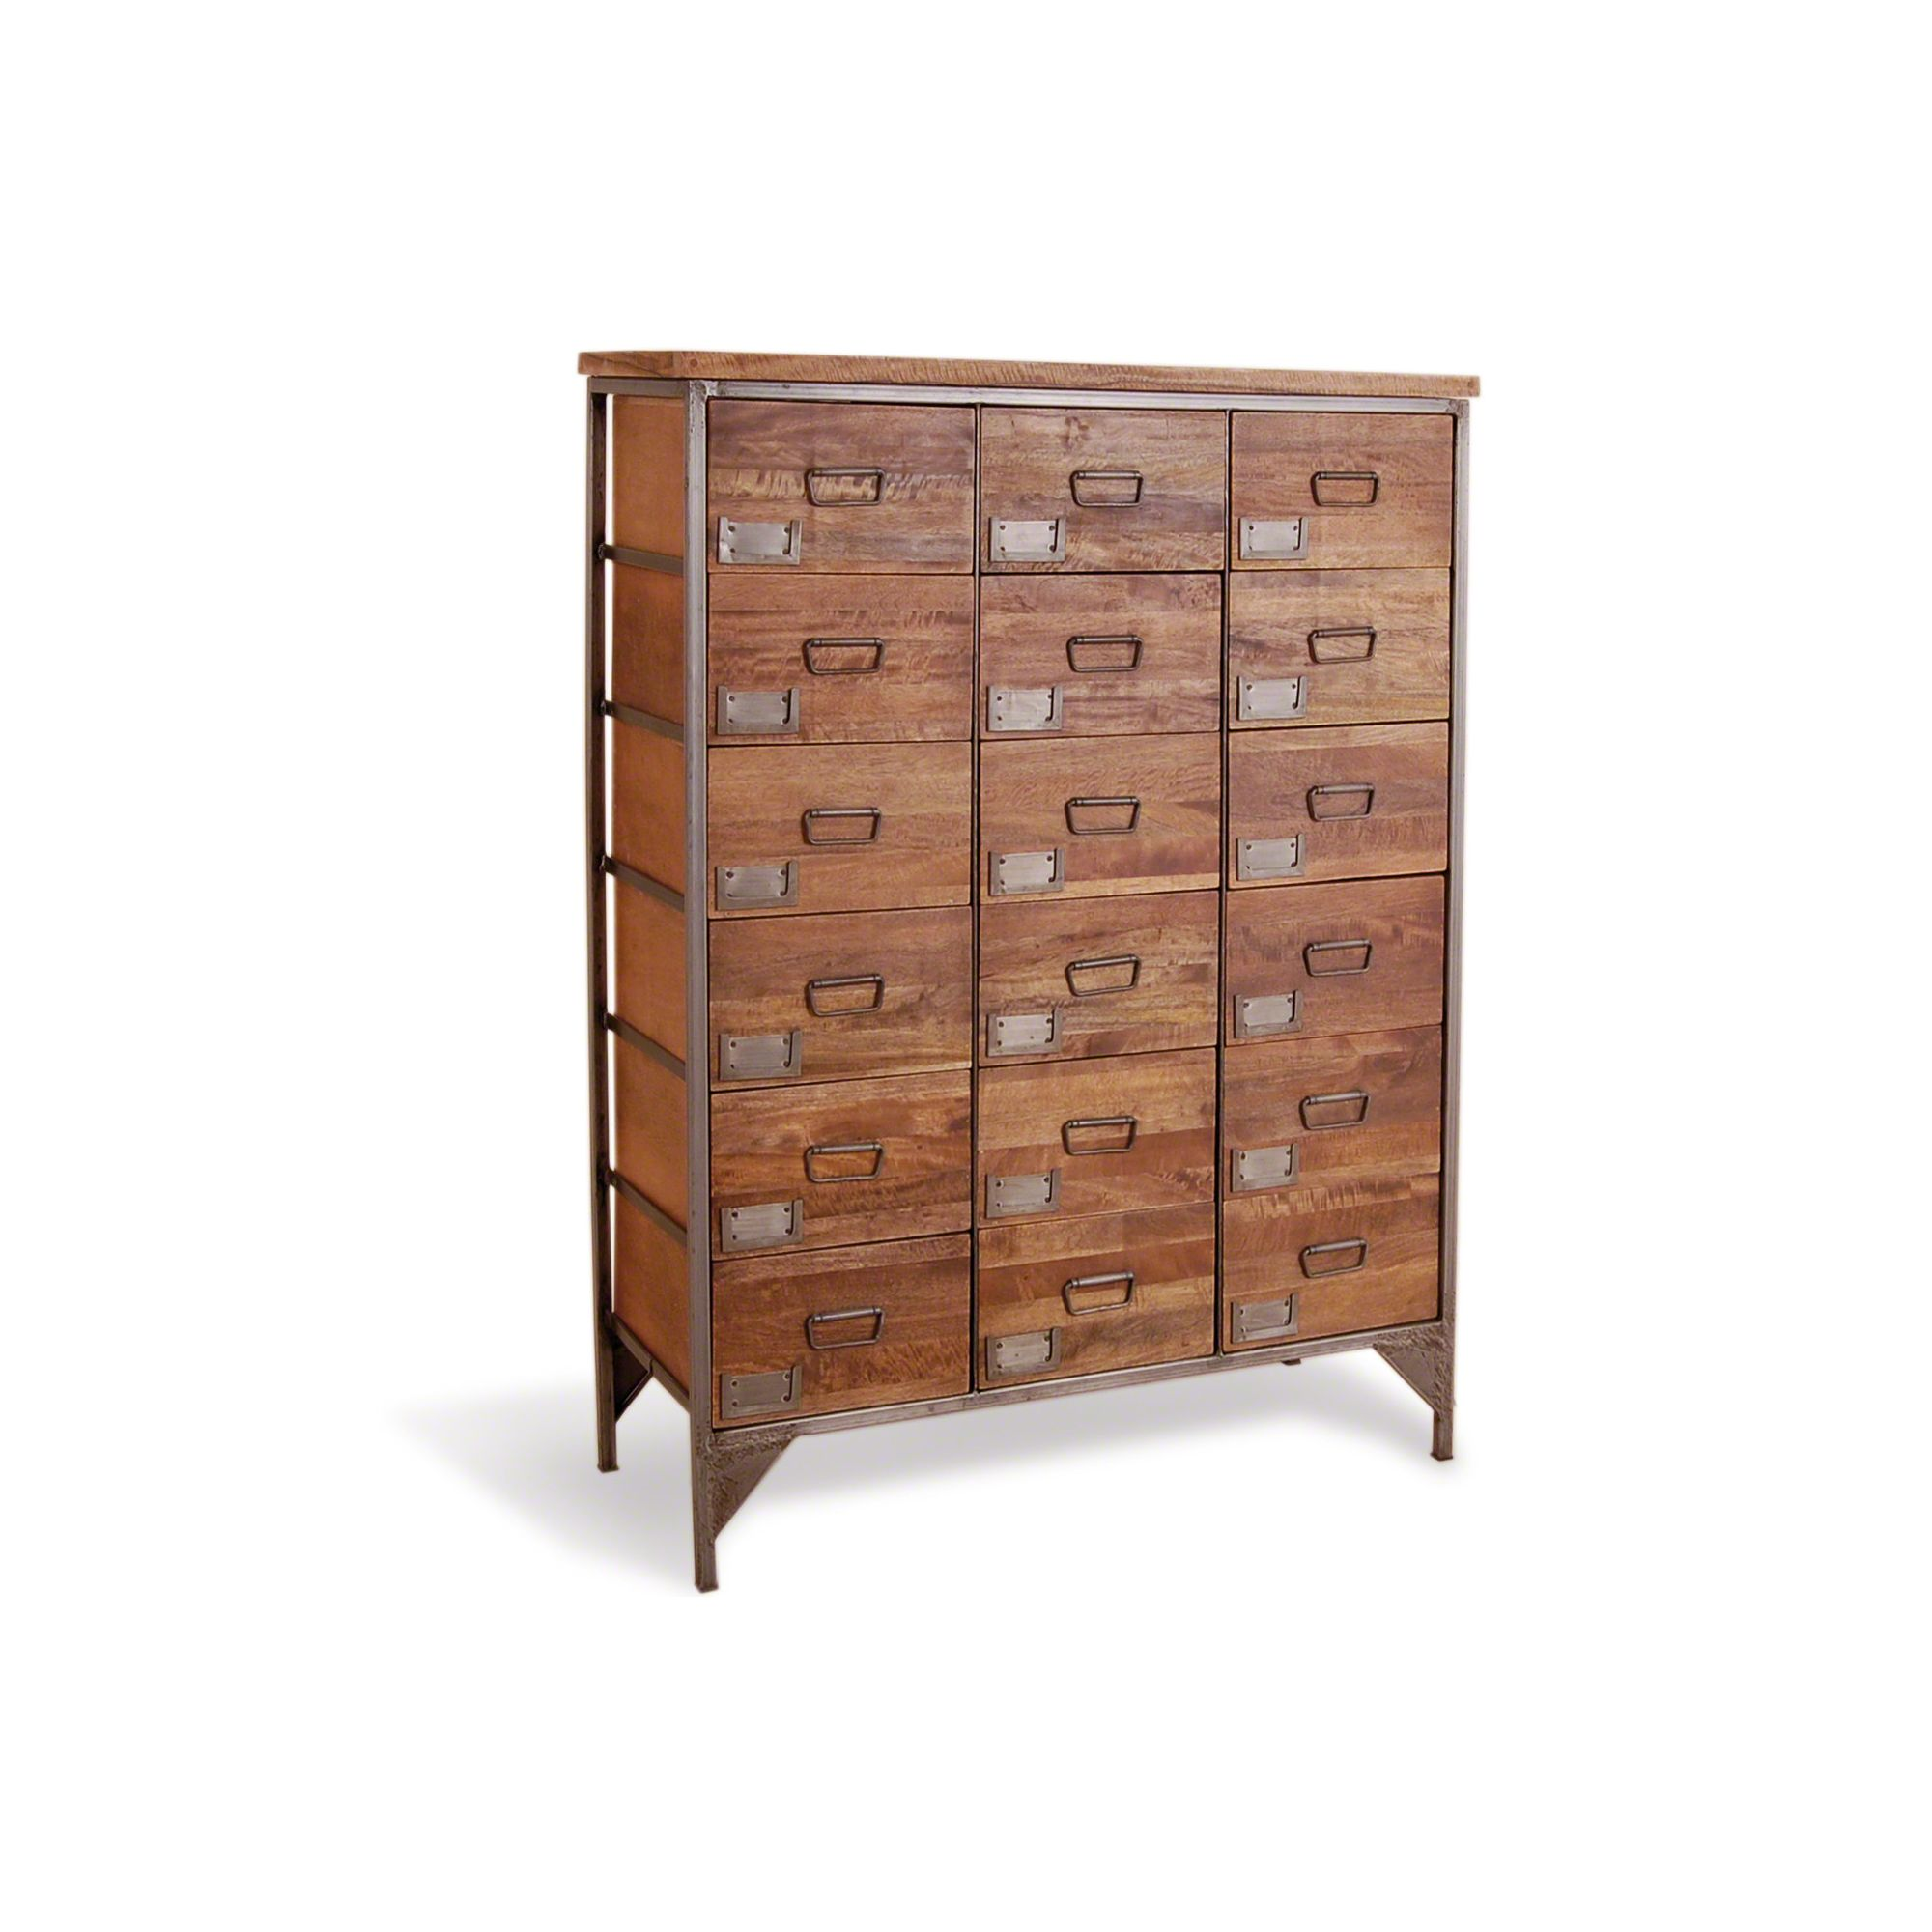 Oceans Apart Industrial Living 18 Drawers Apothecary Chest at Tesco Direct